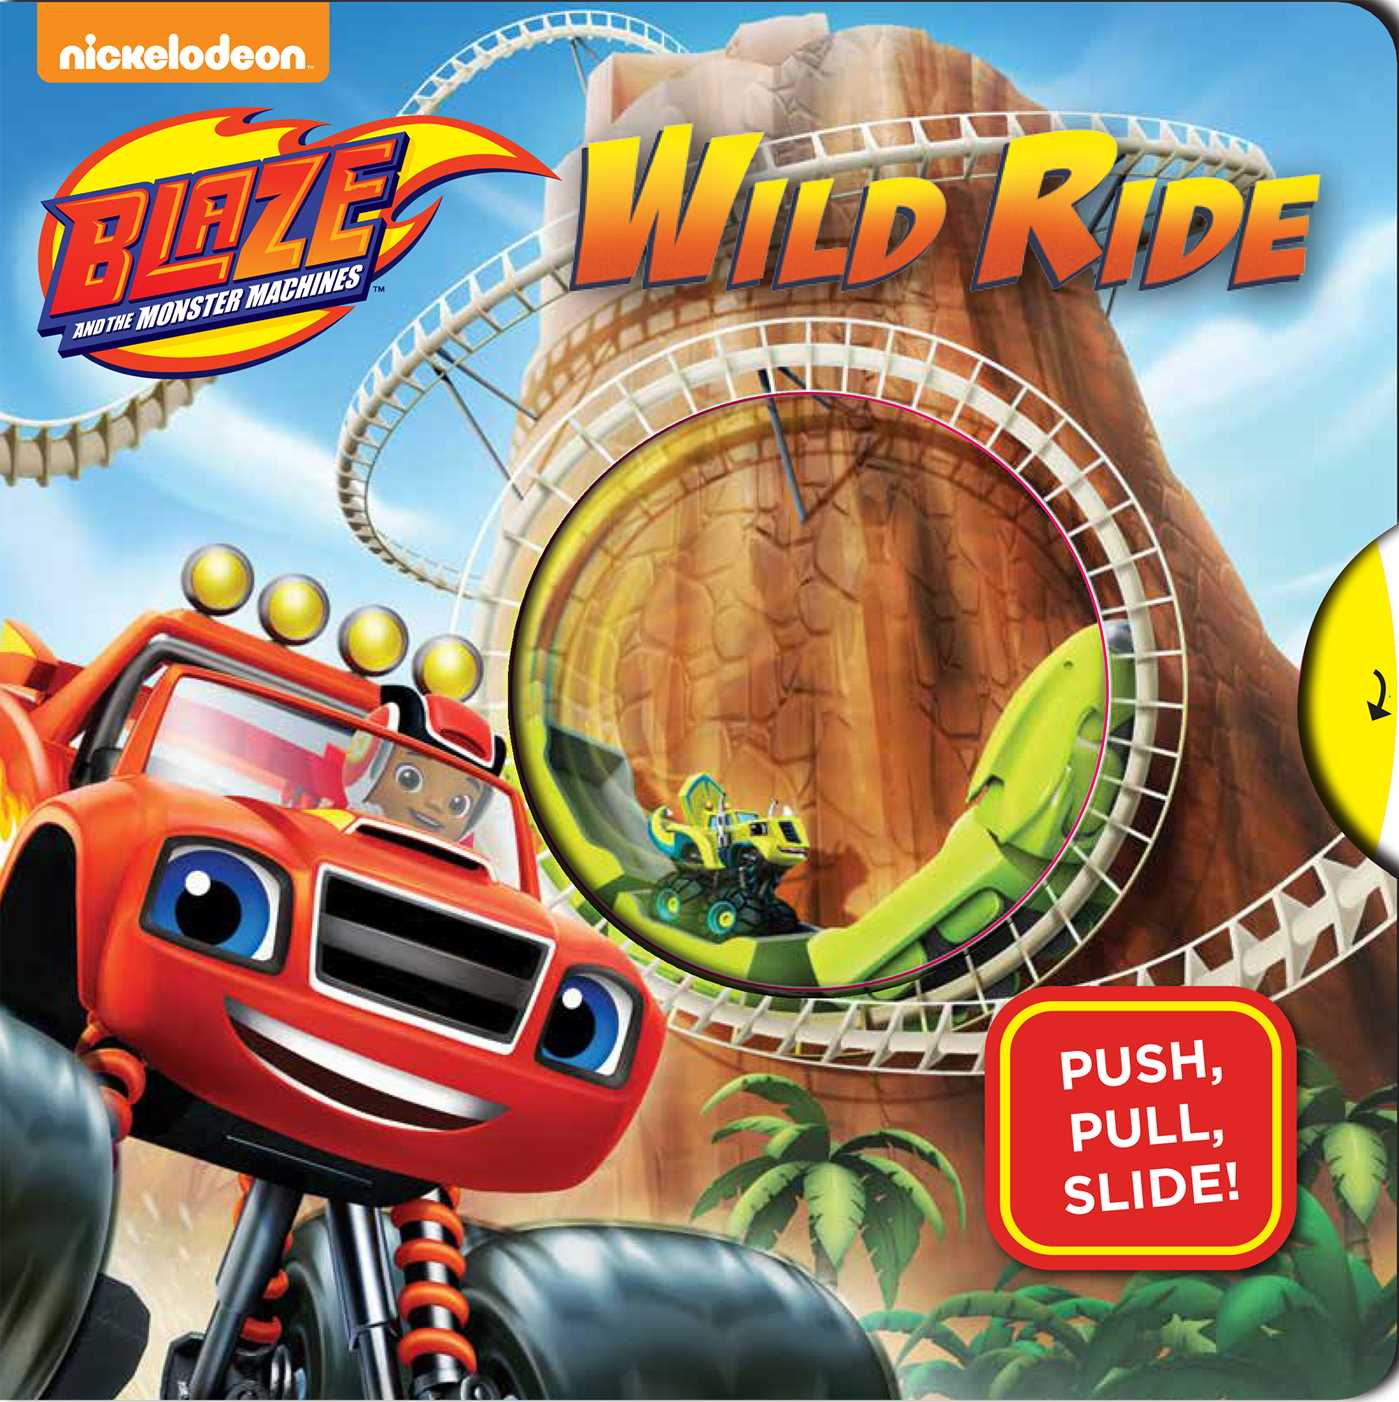 Blaze and the monster machines wild ride 9780794441227 hr